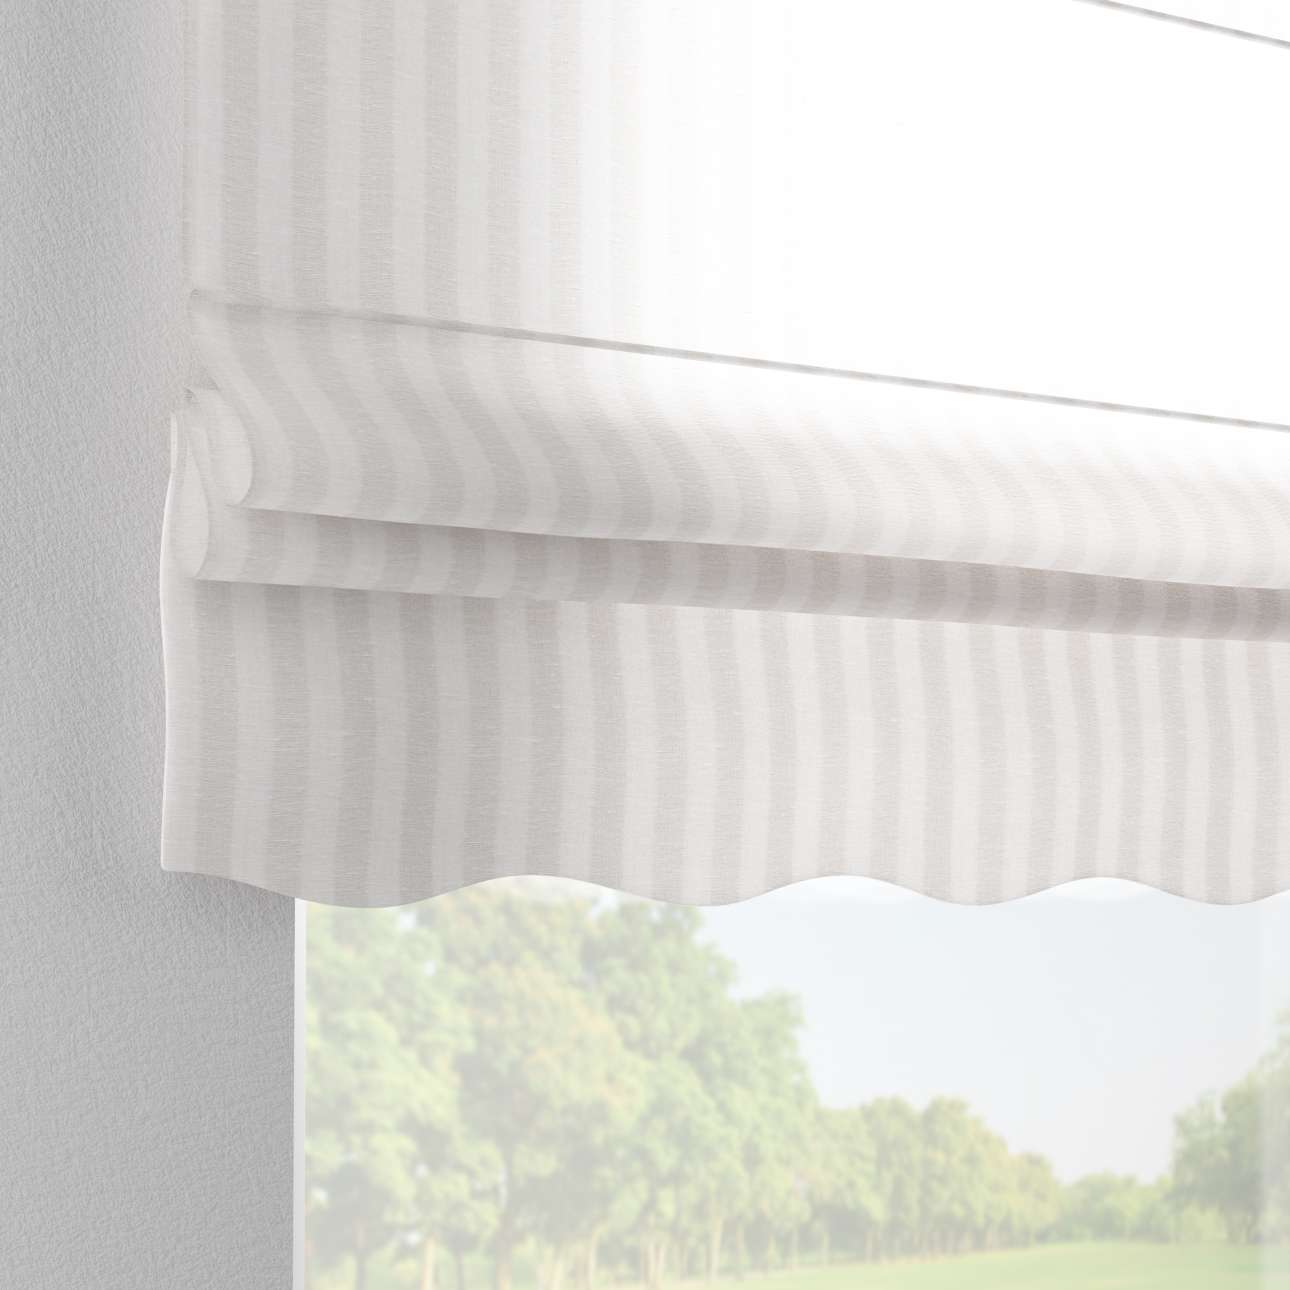 Florence roman blind  80 x 170 cm (31.5 x 67 inch) in collection Linen, fabric: 392-03